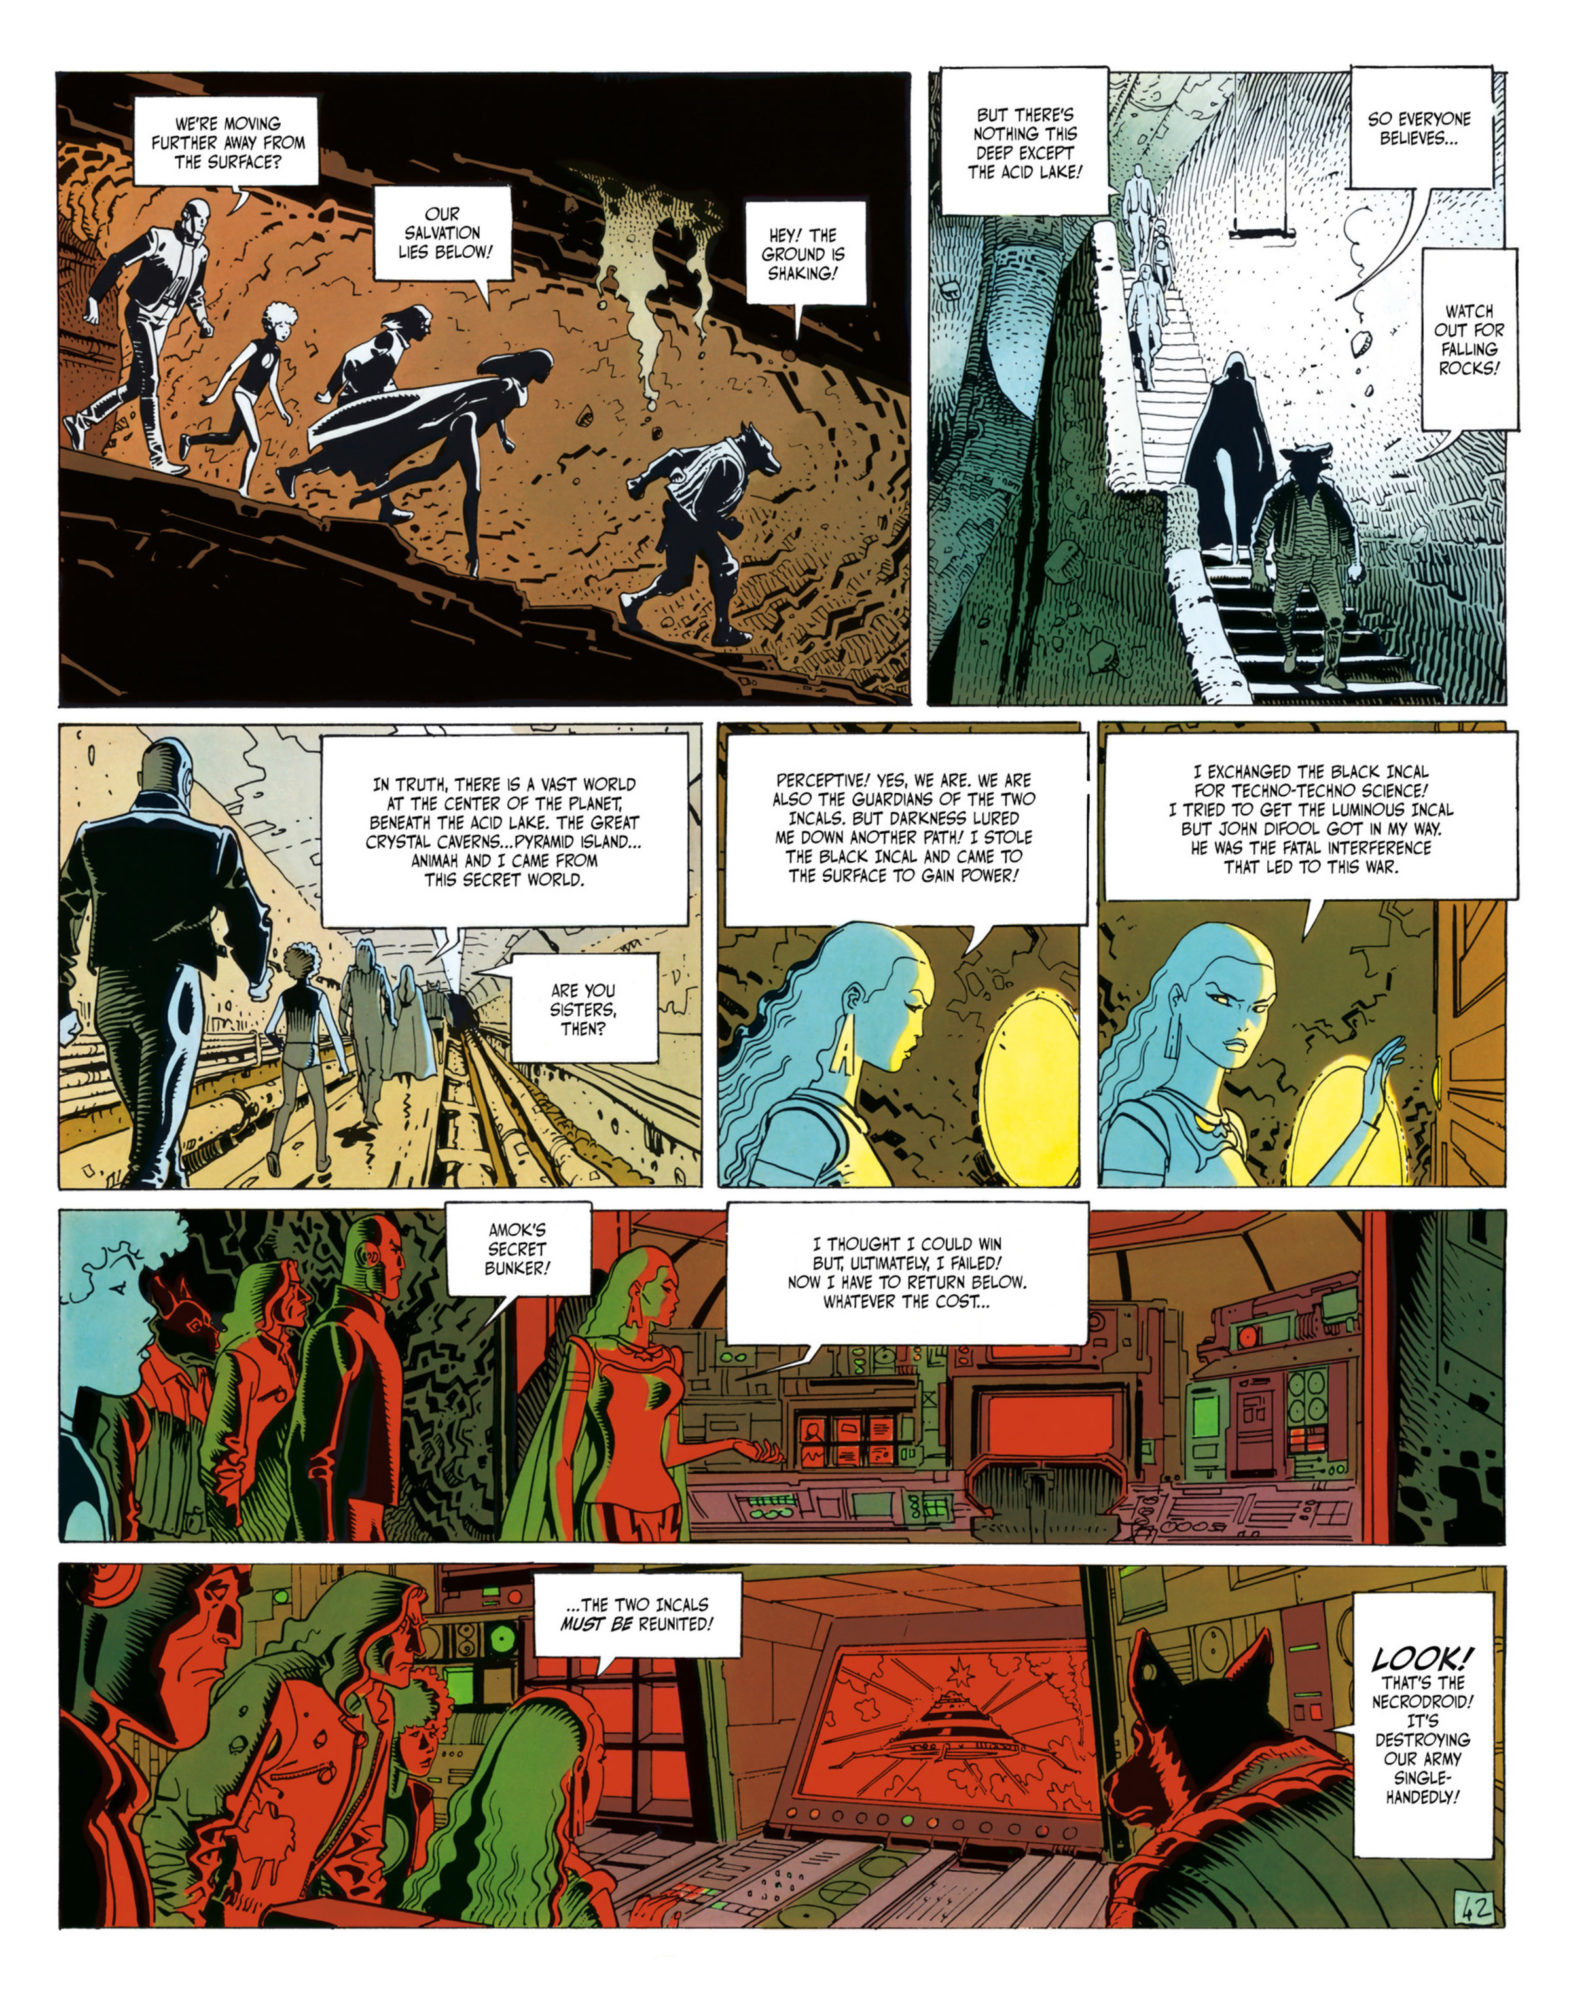 The Incal - Journey to the center of the planet